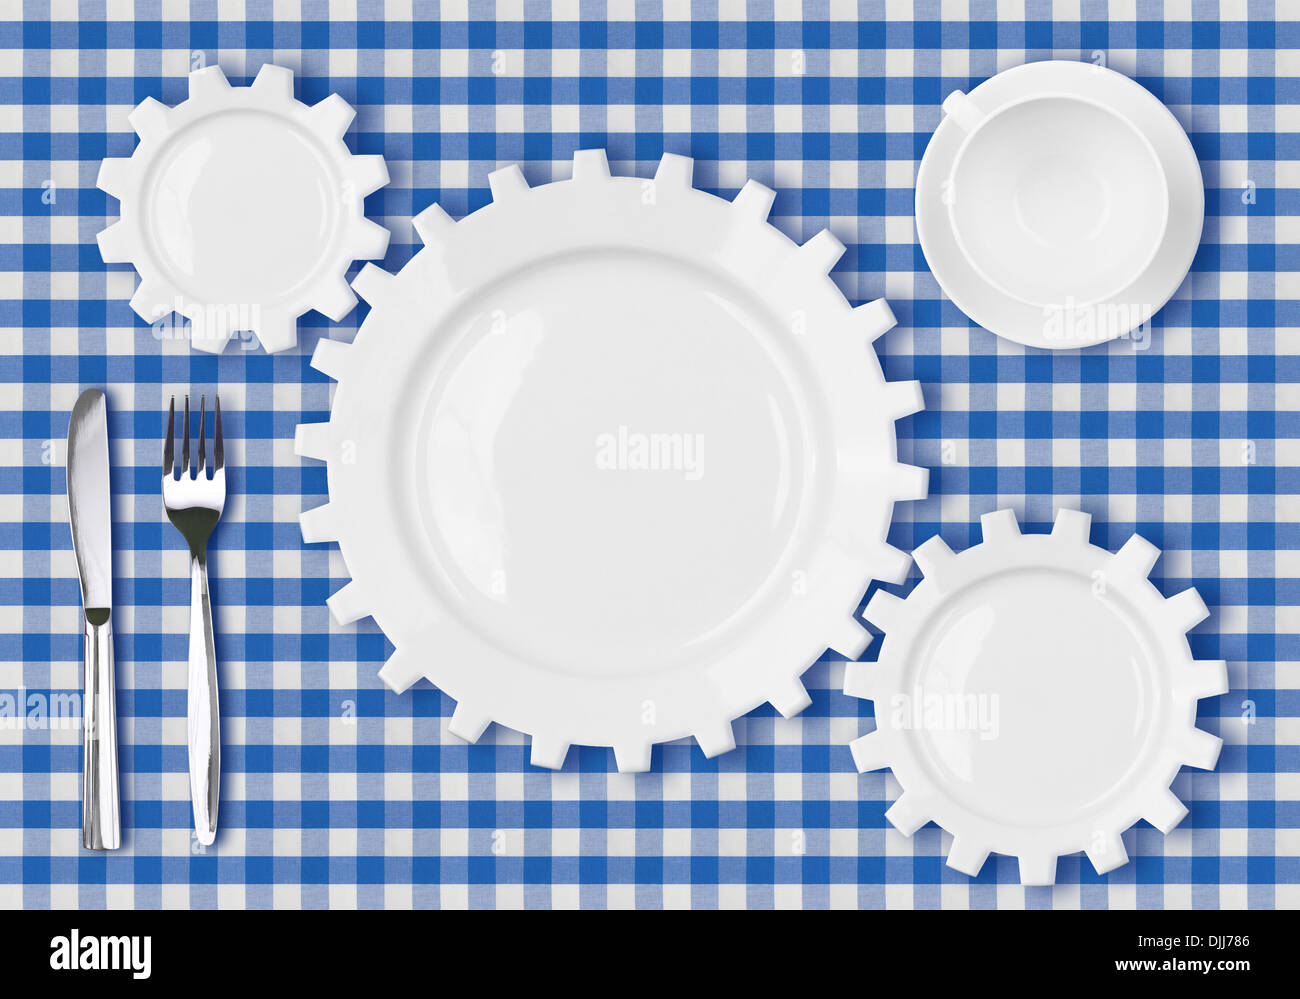 plates gears work concept. Dinner dishes over blue tablecloth. - Stock Image